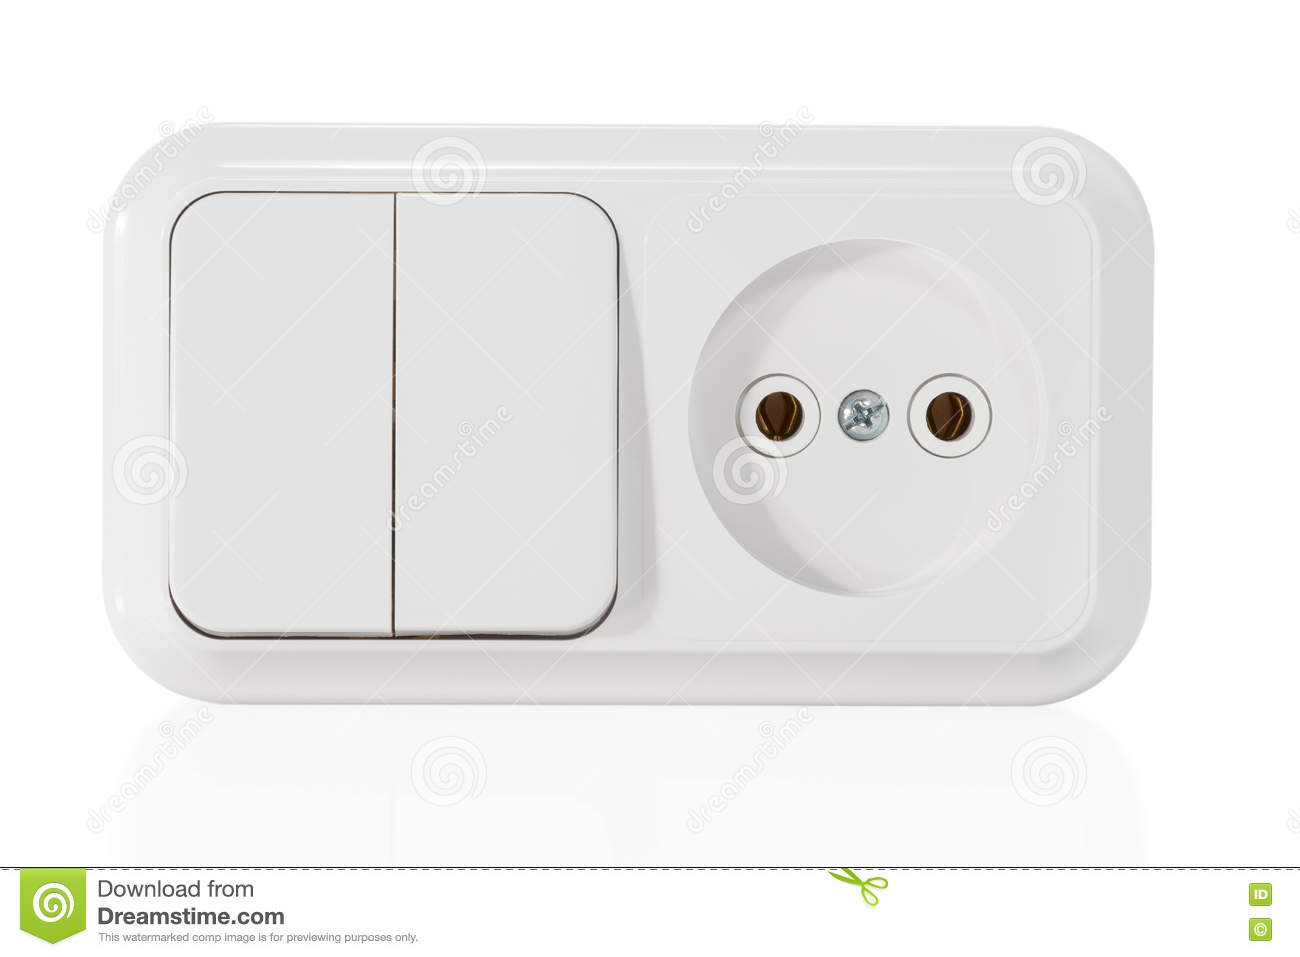 European Wall Outlet With Switches Stock Image - Image of background ...